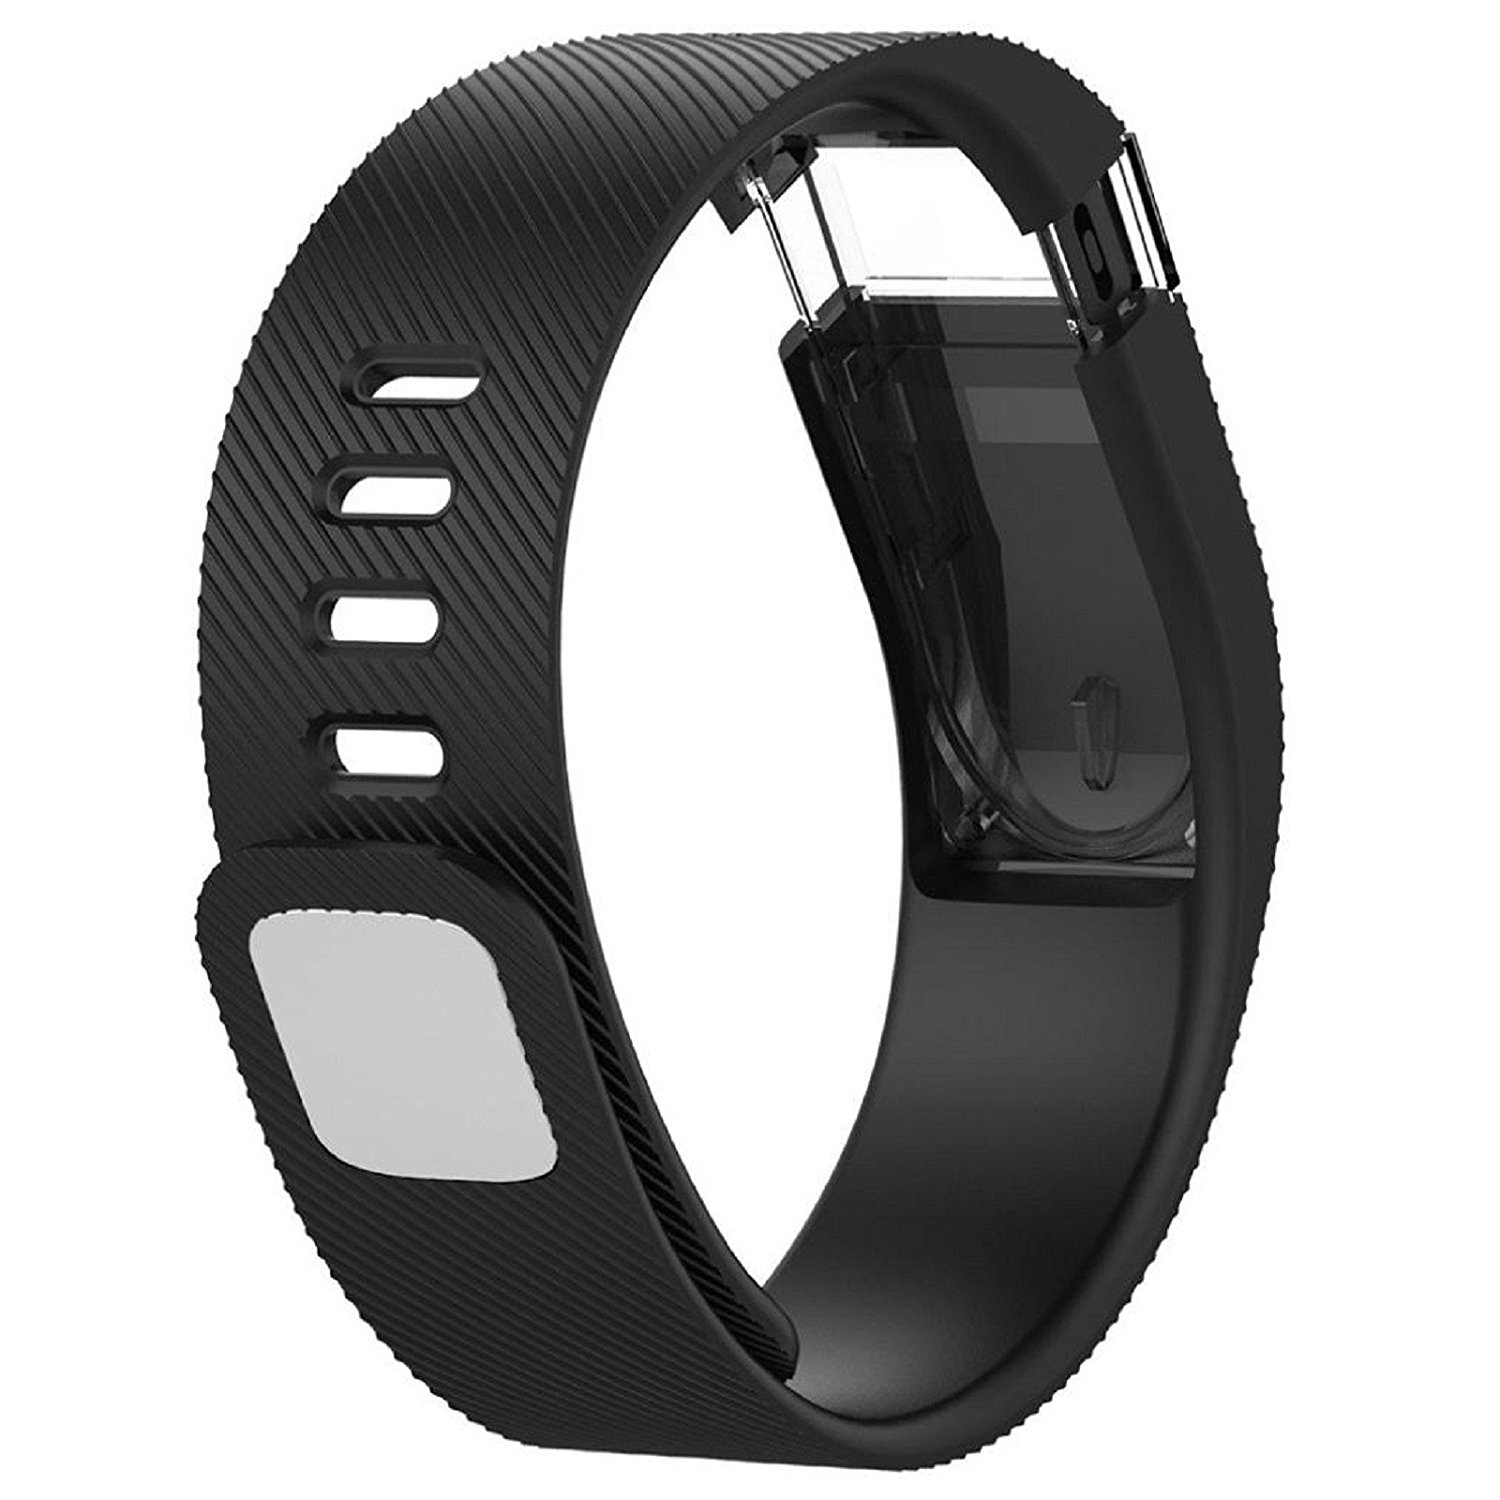 Owill Replacement Silicone Band Rubber Strap Wristband Bracelet For Fitbit Charge, Band Length: 160-225MM (Black)